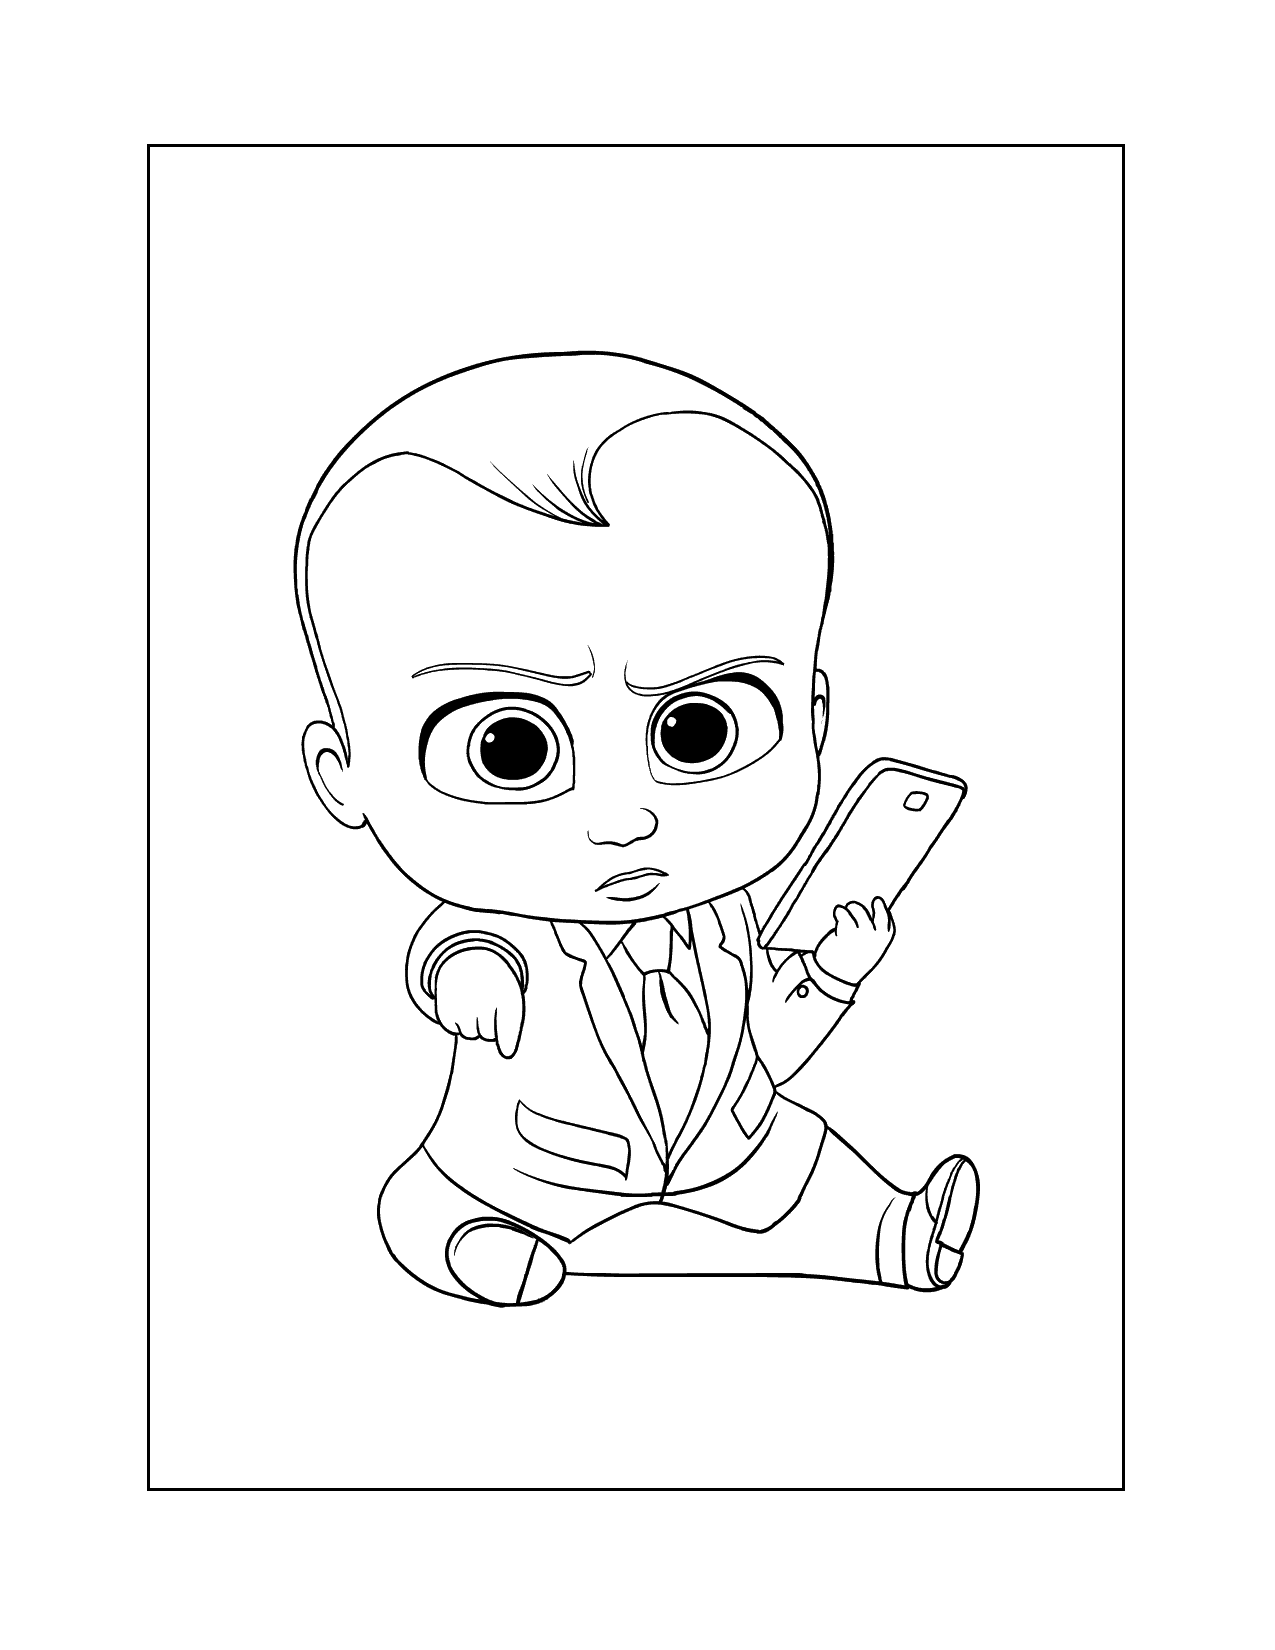 Boss Baby On Phone Coloring Page